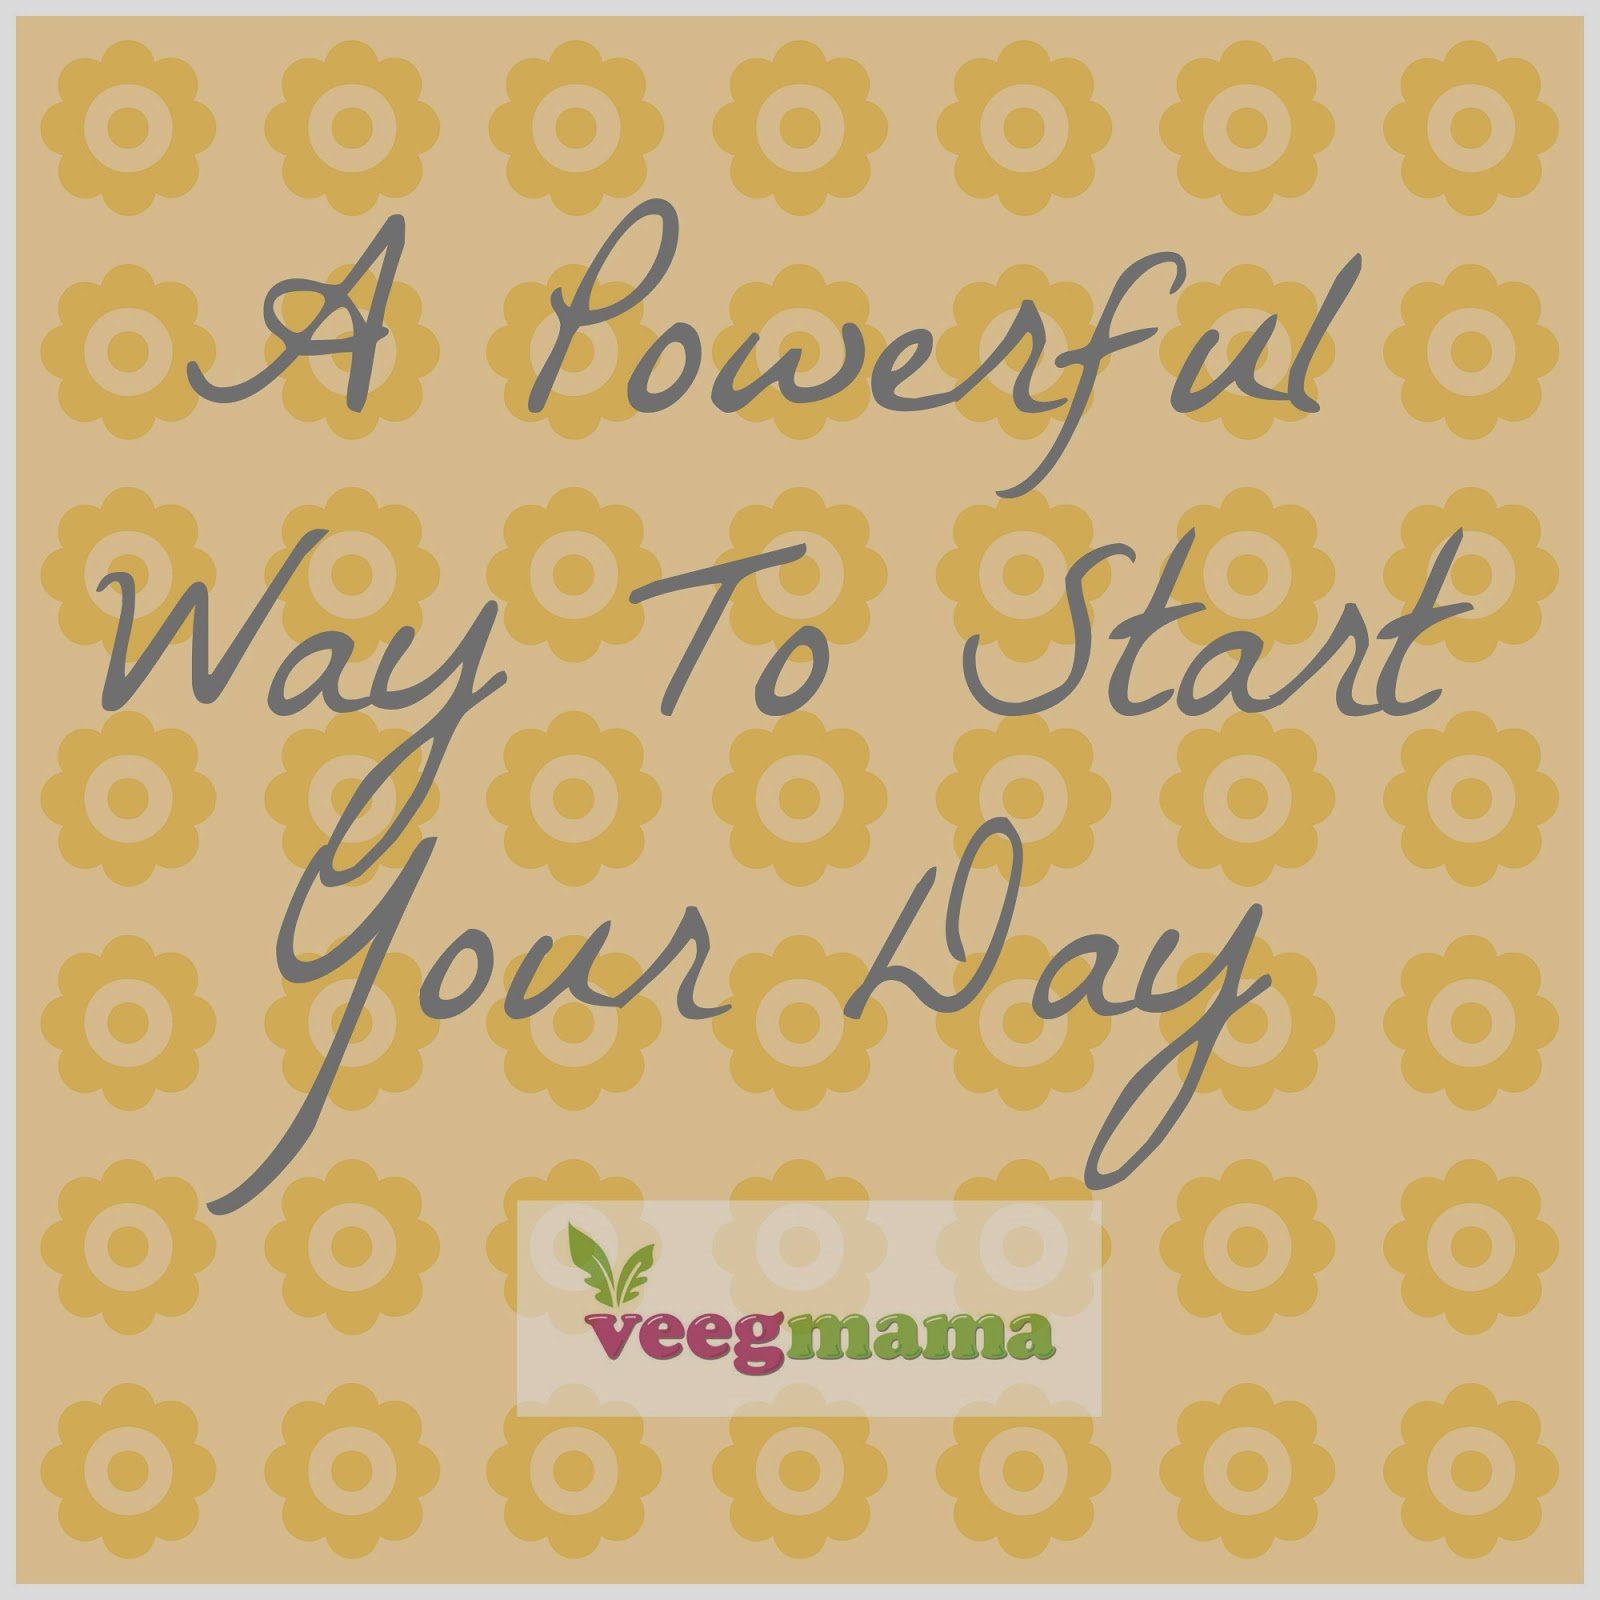 VeegMama's Guide To Starting Your Day